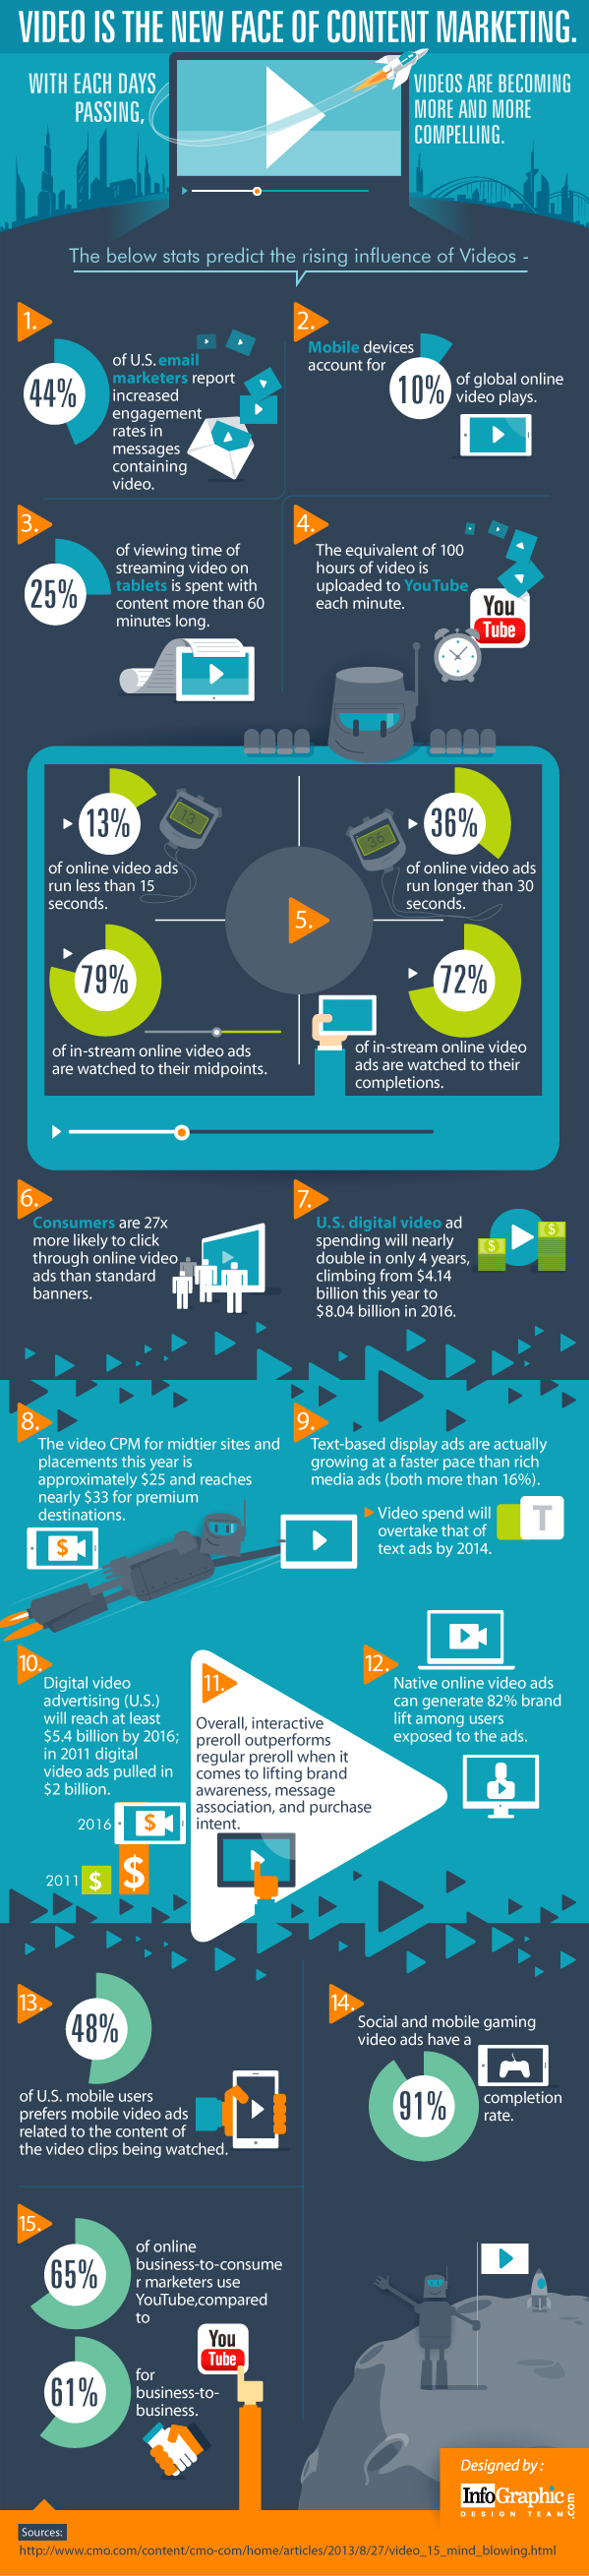 video is the new face of content marketing infographic